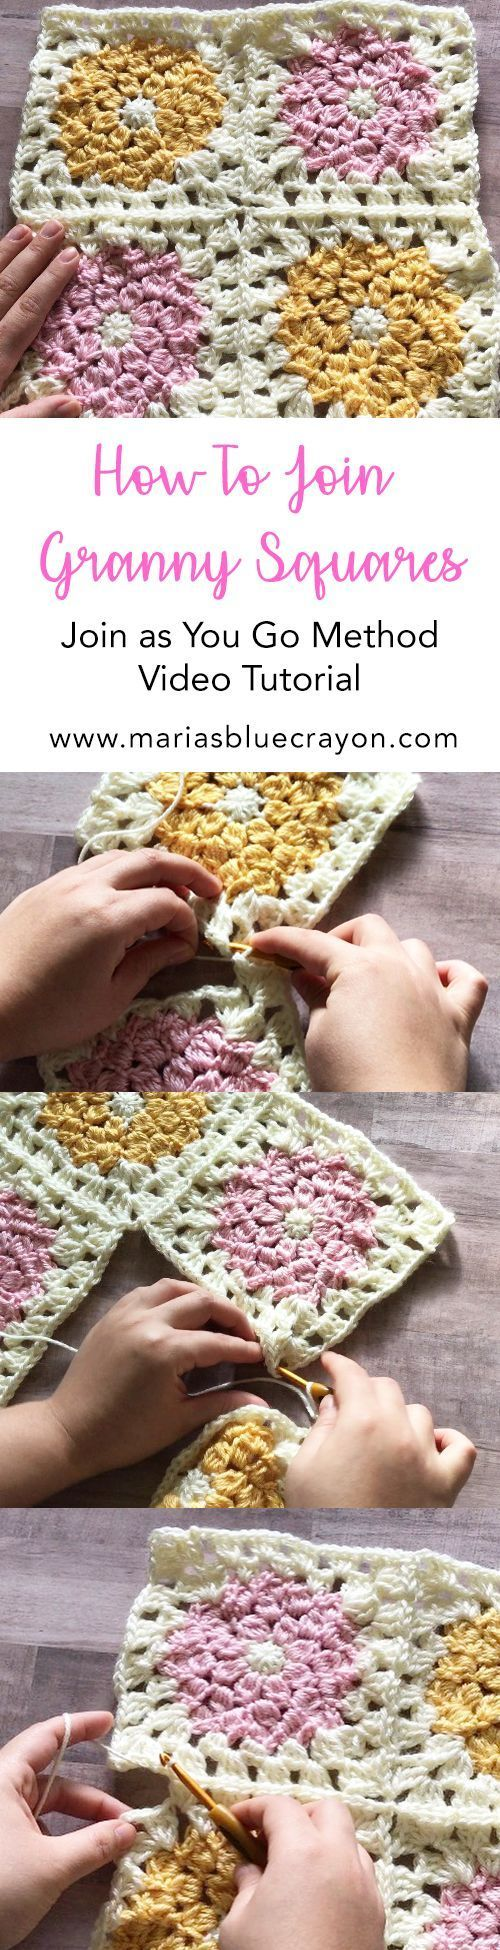 How to Join Granny Squares | Join as you go method | Crochet tip | Sewing together granny squares | Granny Square | Free tutorial #CrochetTutorial